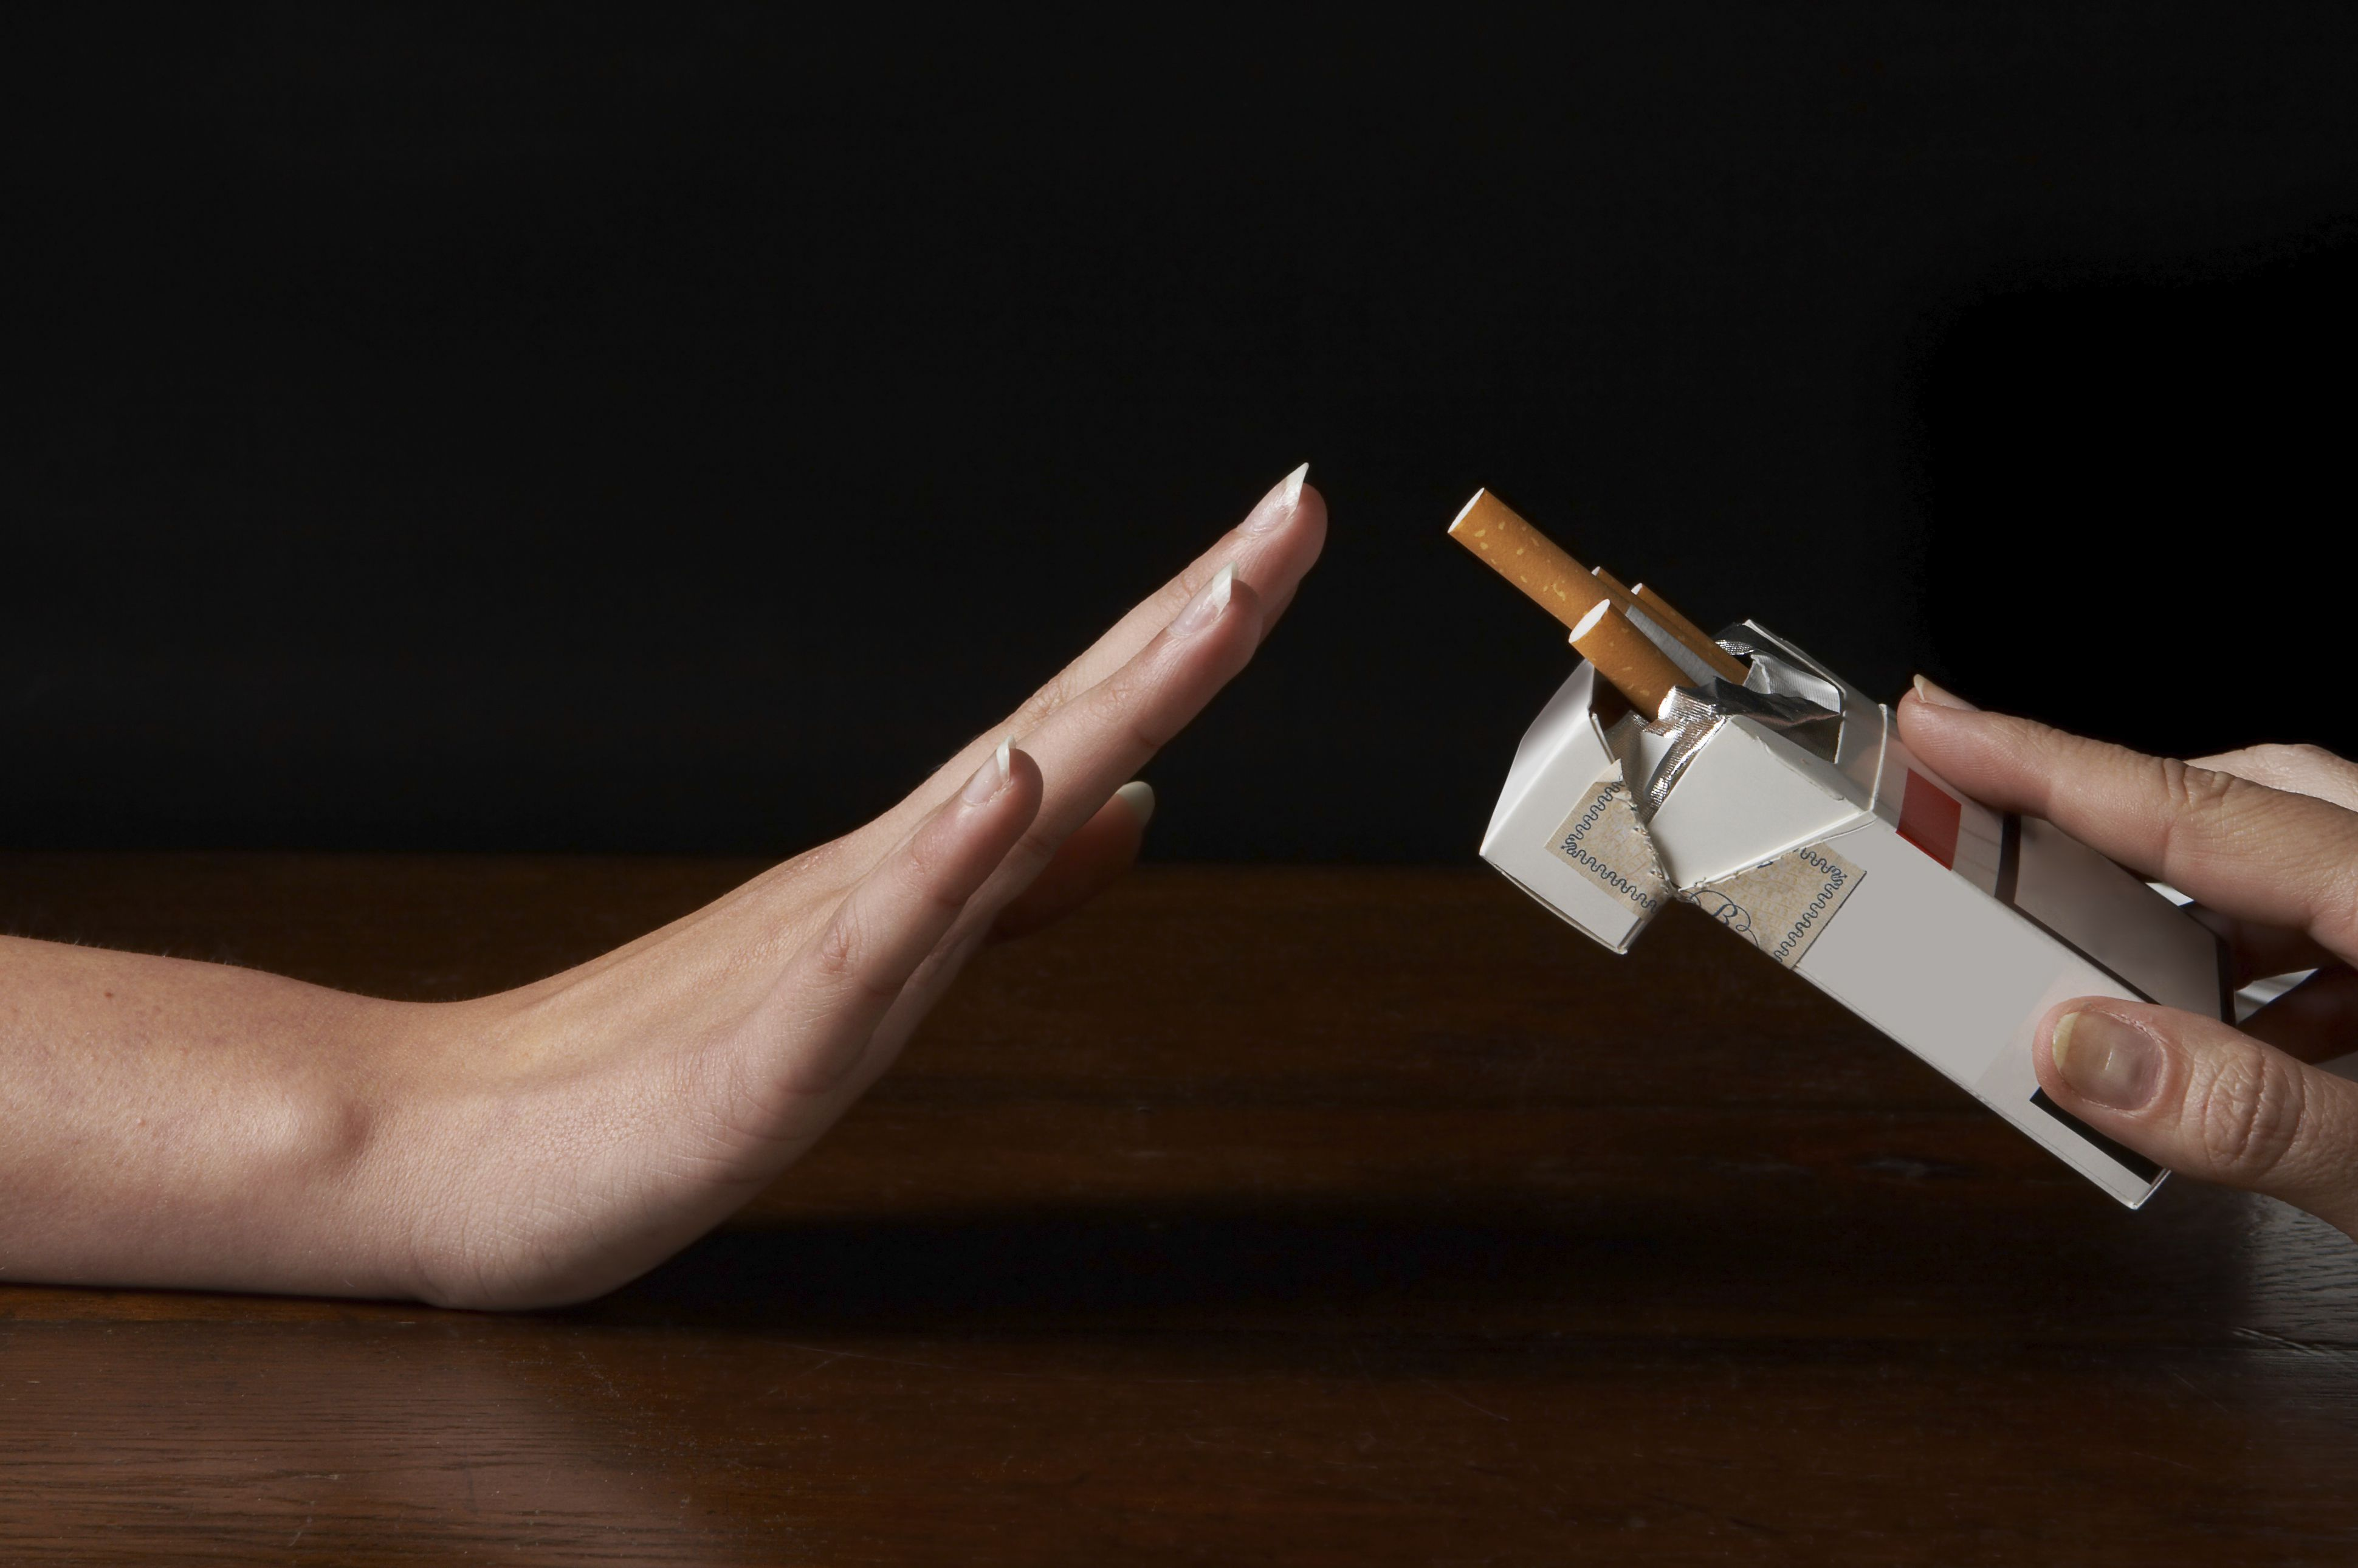 second hand smoking research paper In order to prepare an argumentative essay on smoking in public the claims that second hand smoke leads to serious health problems must research papers.